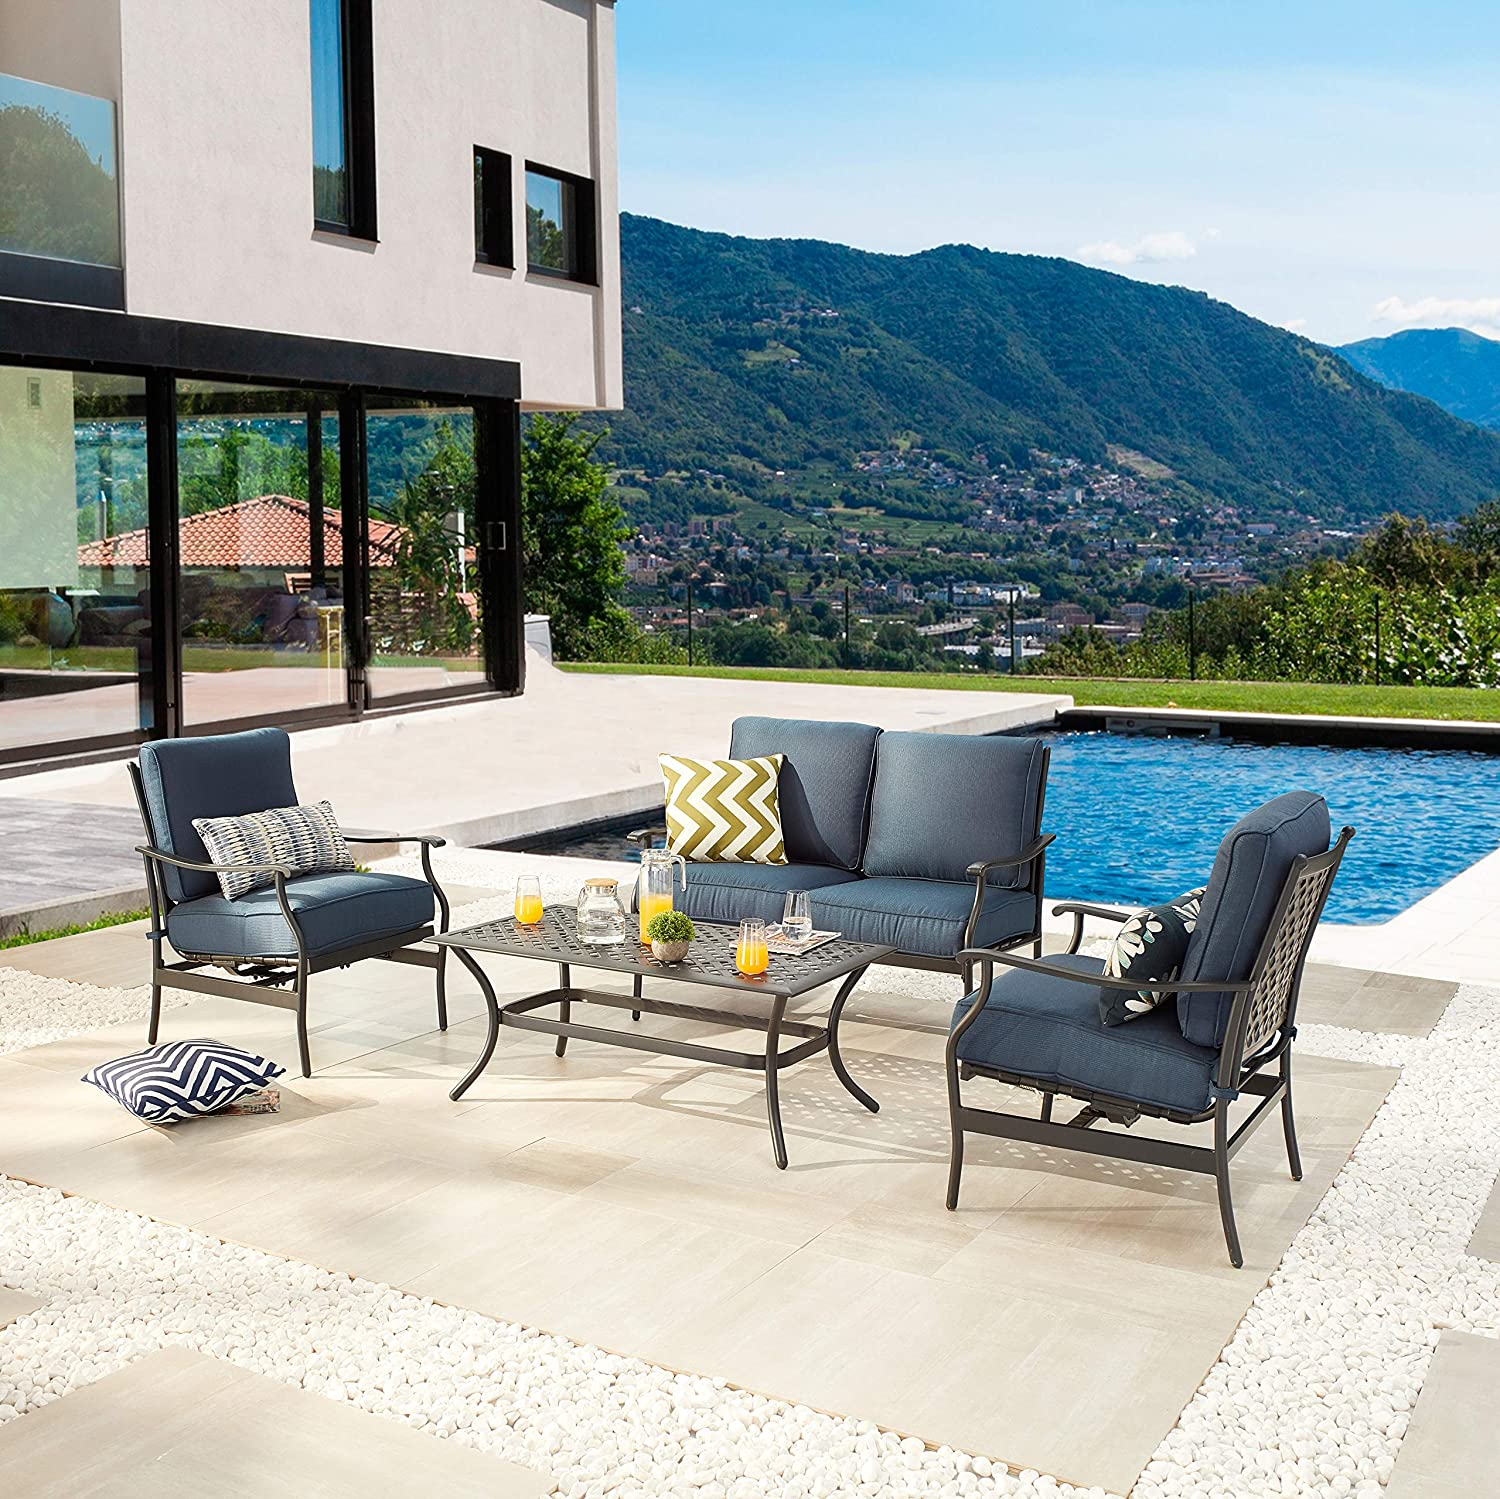 LOKATSE HOME 4 Piece Patio Conversation Set Outdoor Chat Dining Furniture Cushioned Metal Loveseat 2 Chairs and a Coffee Table, Blue